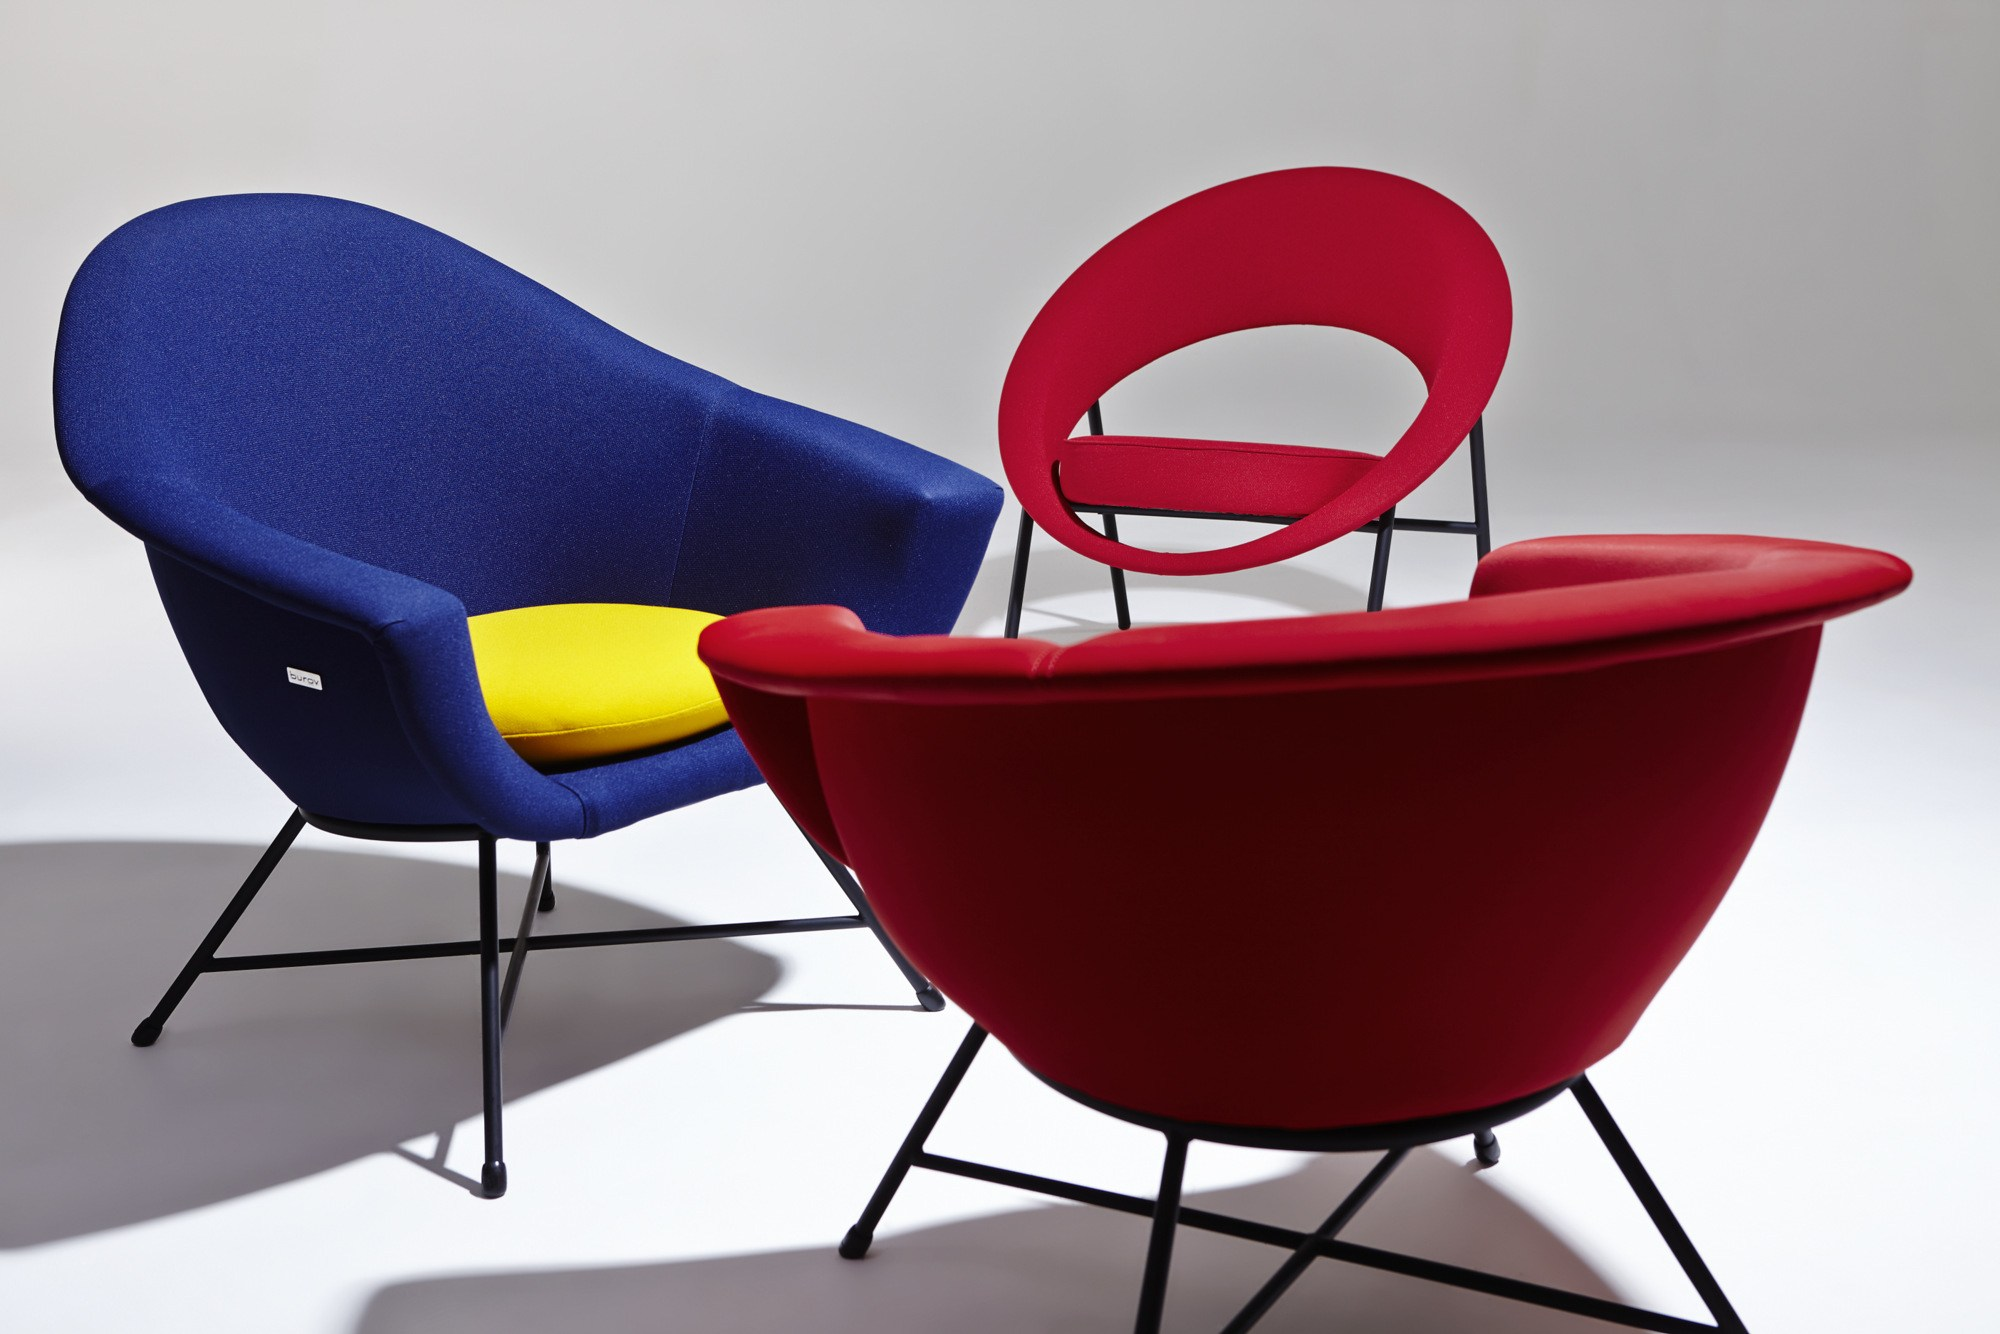 Burov Fauteuils 57 Fauteuil By Burov Design Dangles And Defrance